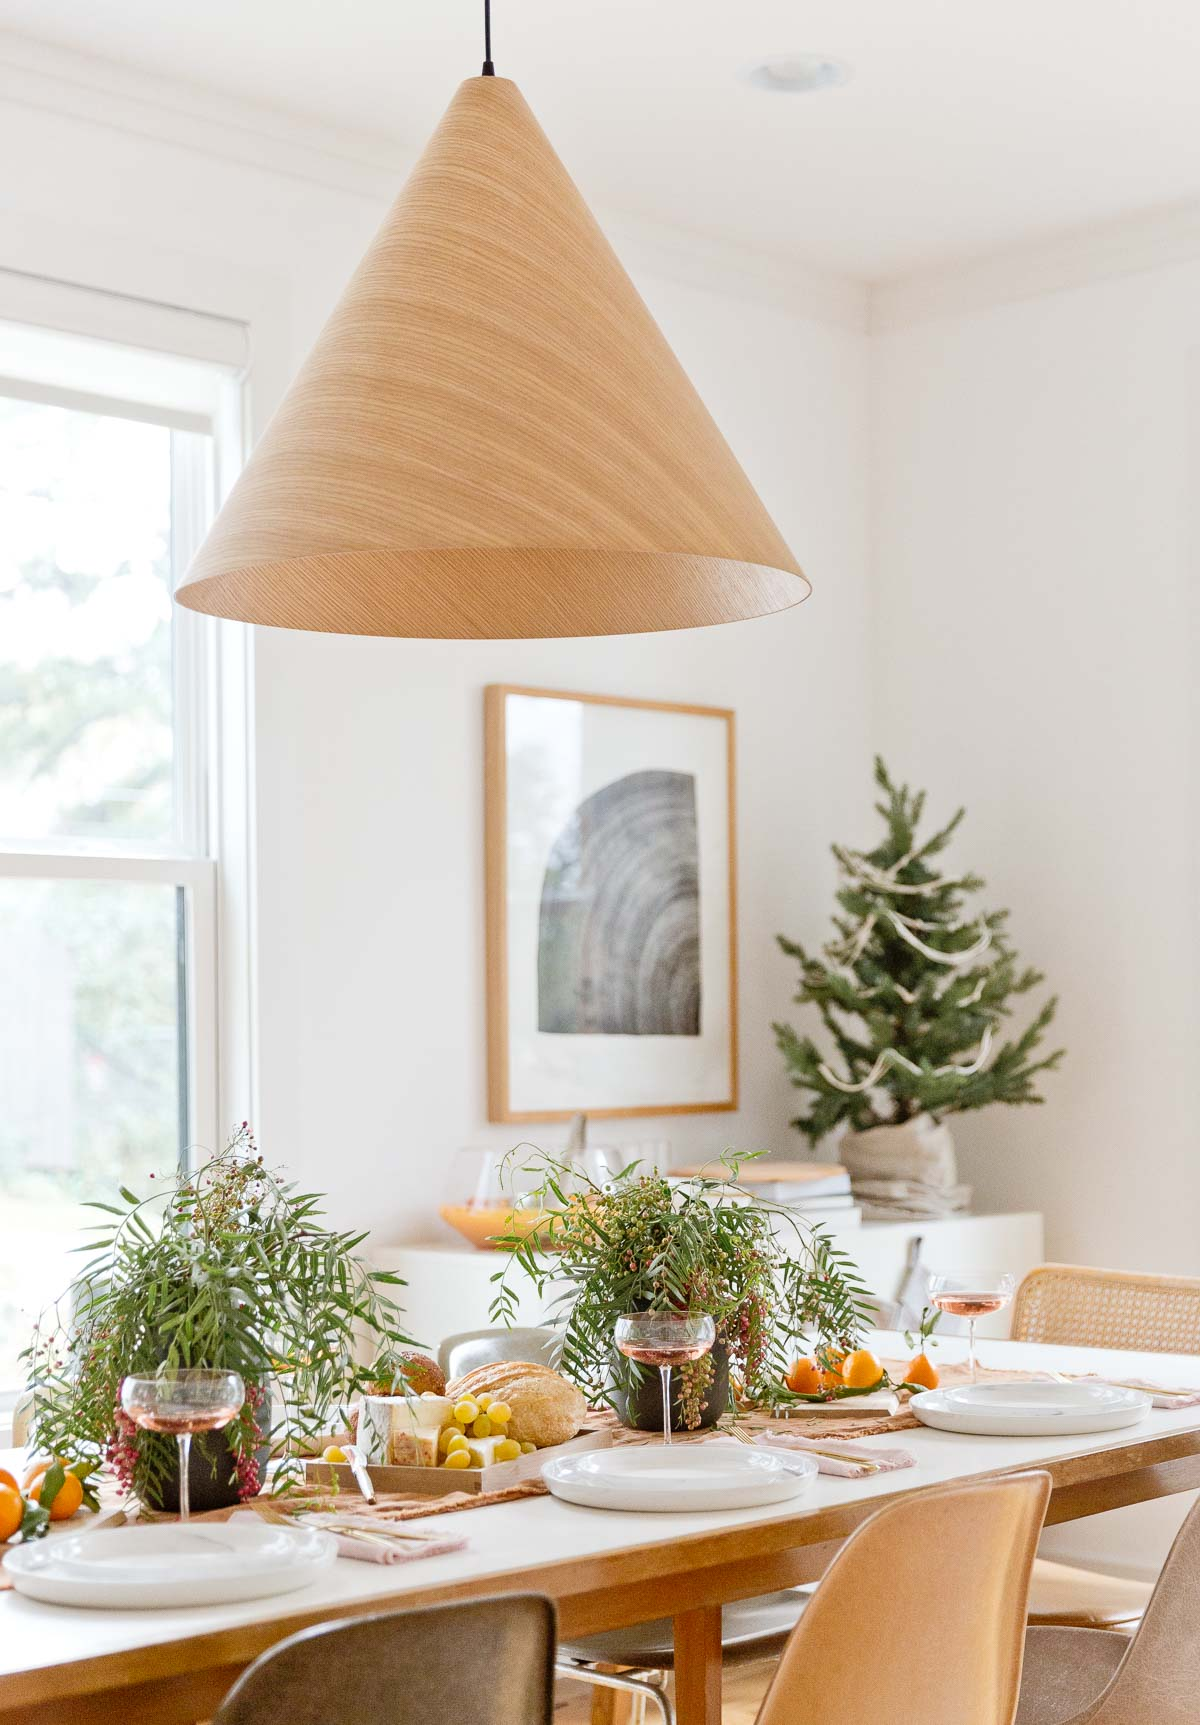 Holiday decor on a simple mid-century dining table